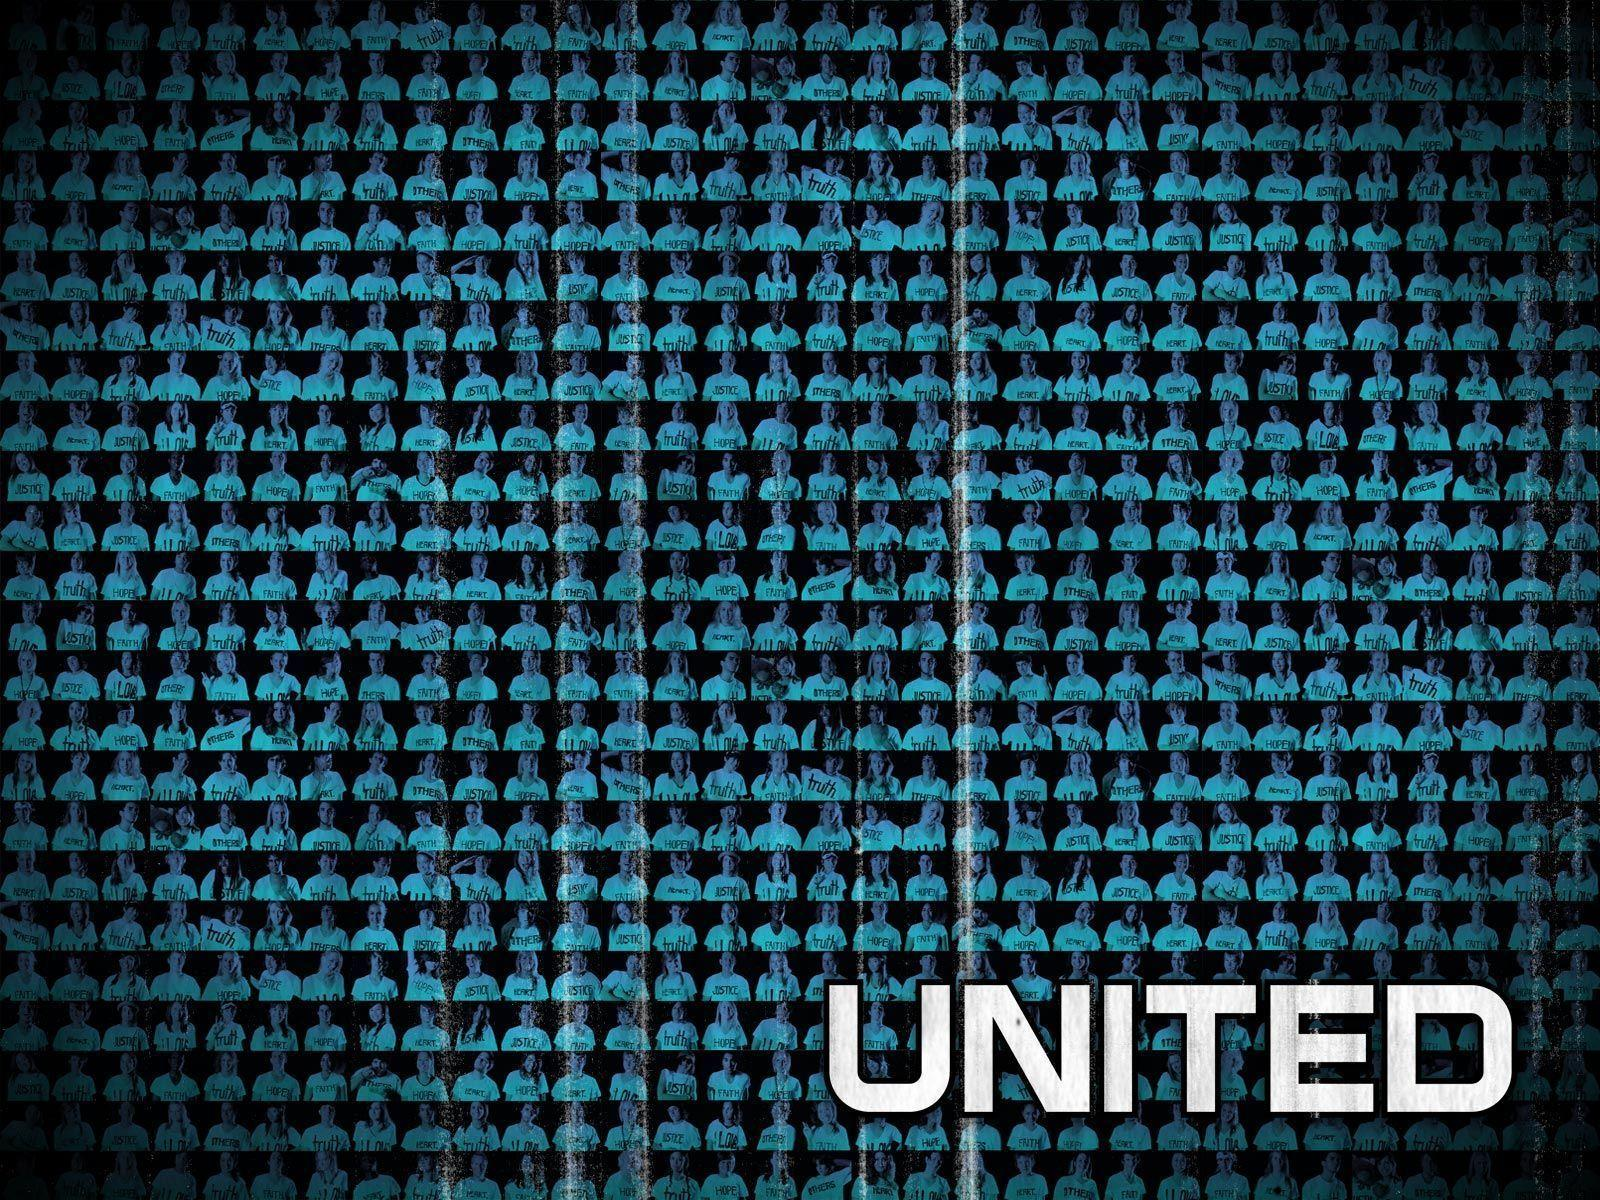 Hillsong United 2015 Wallpapers 1600x1200